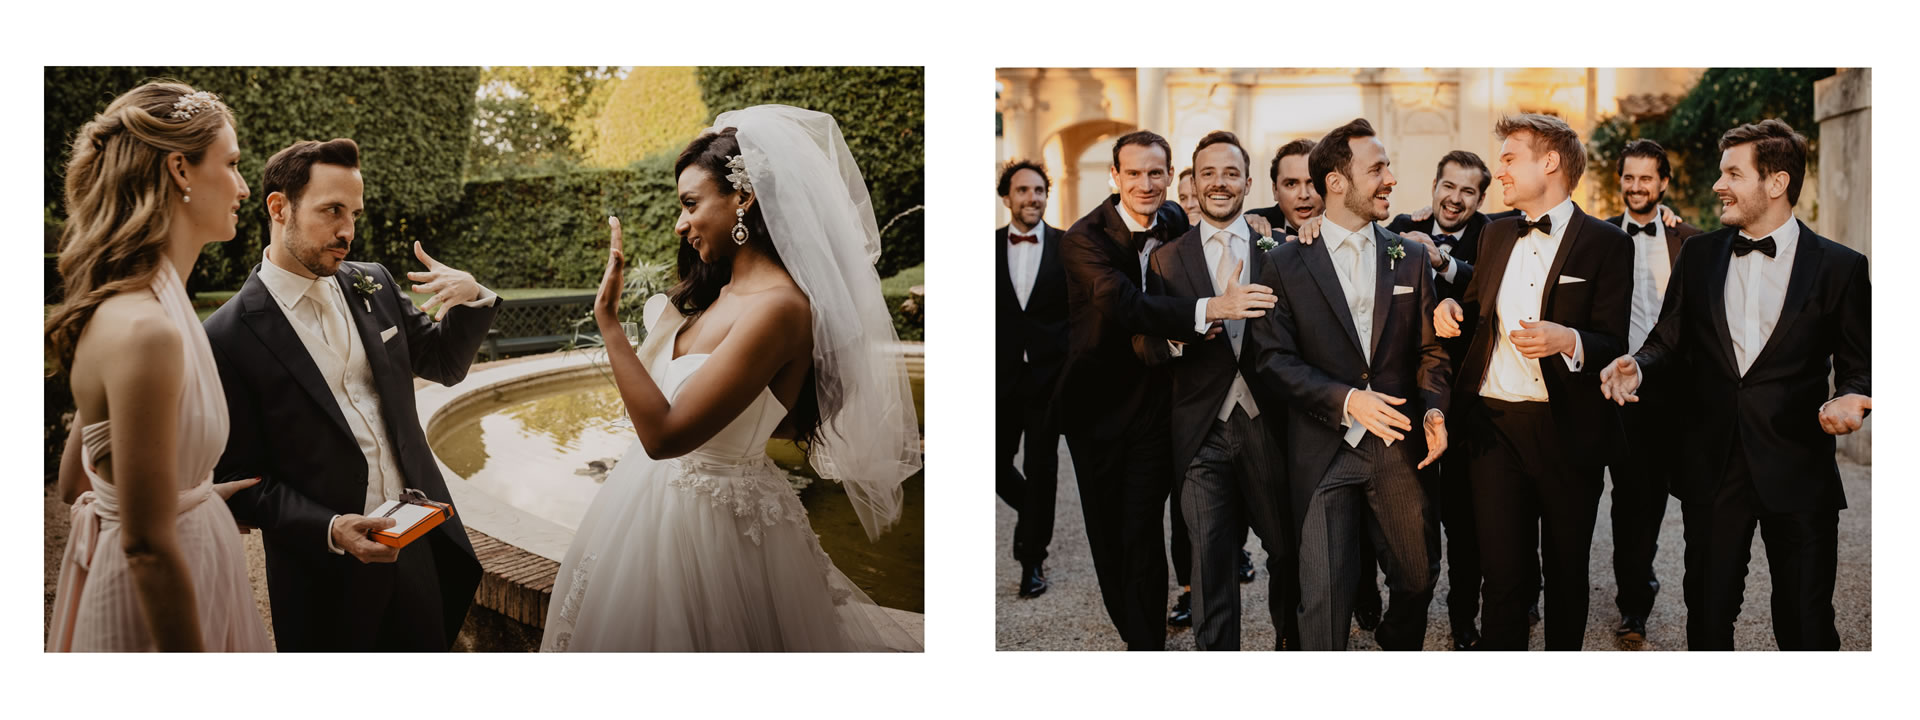 A Love story … from Rome to Harpers' Bazaar - 32 :: A Love story… from Rome to Harper's Bazaar :: Luxury wedding photography - 31 :: A Love story … from Rome to Harpers' Bazaar - 32